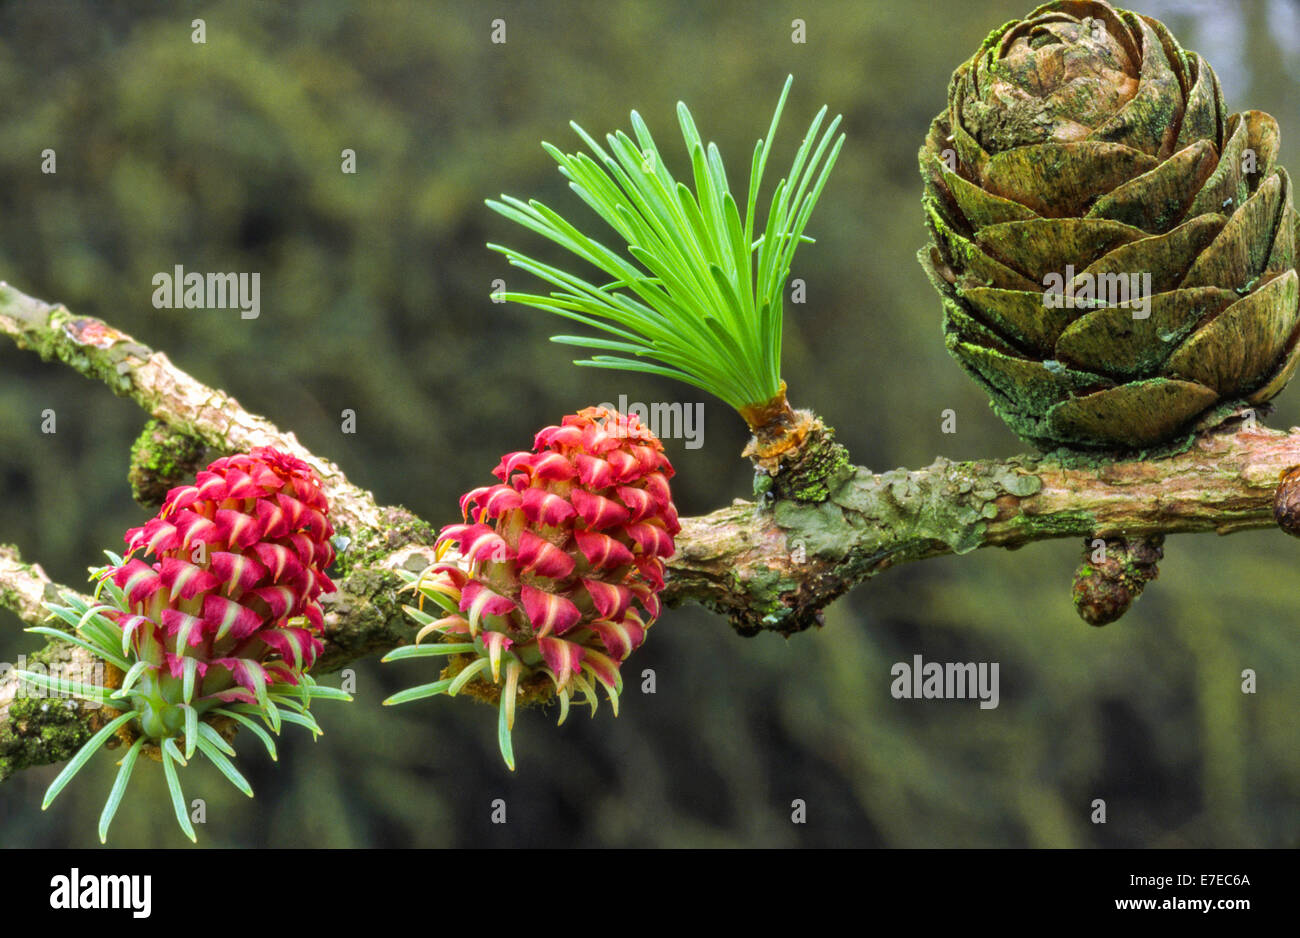 LARCH TREE [ LARIX ] FLOWERS NEEDLES AND CONE IN SPRING - Stock Image